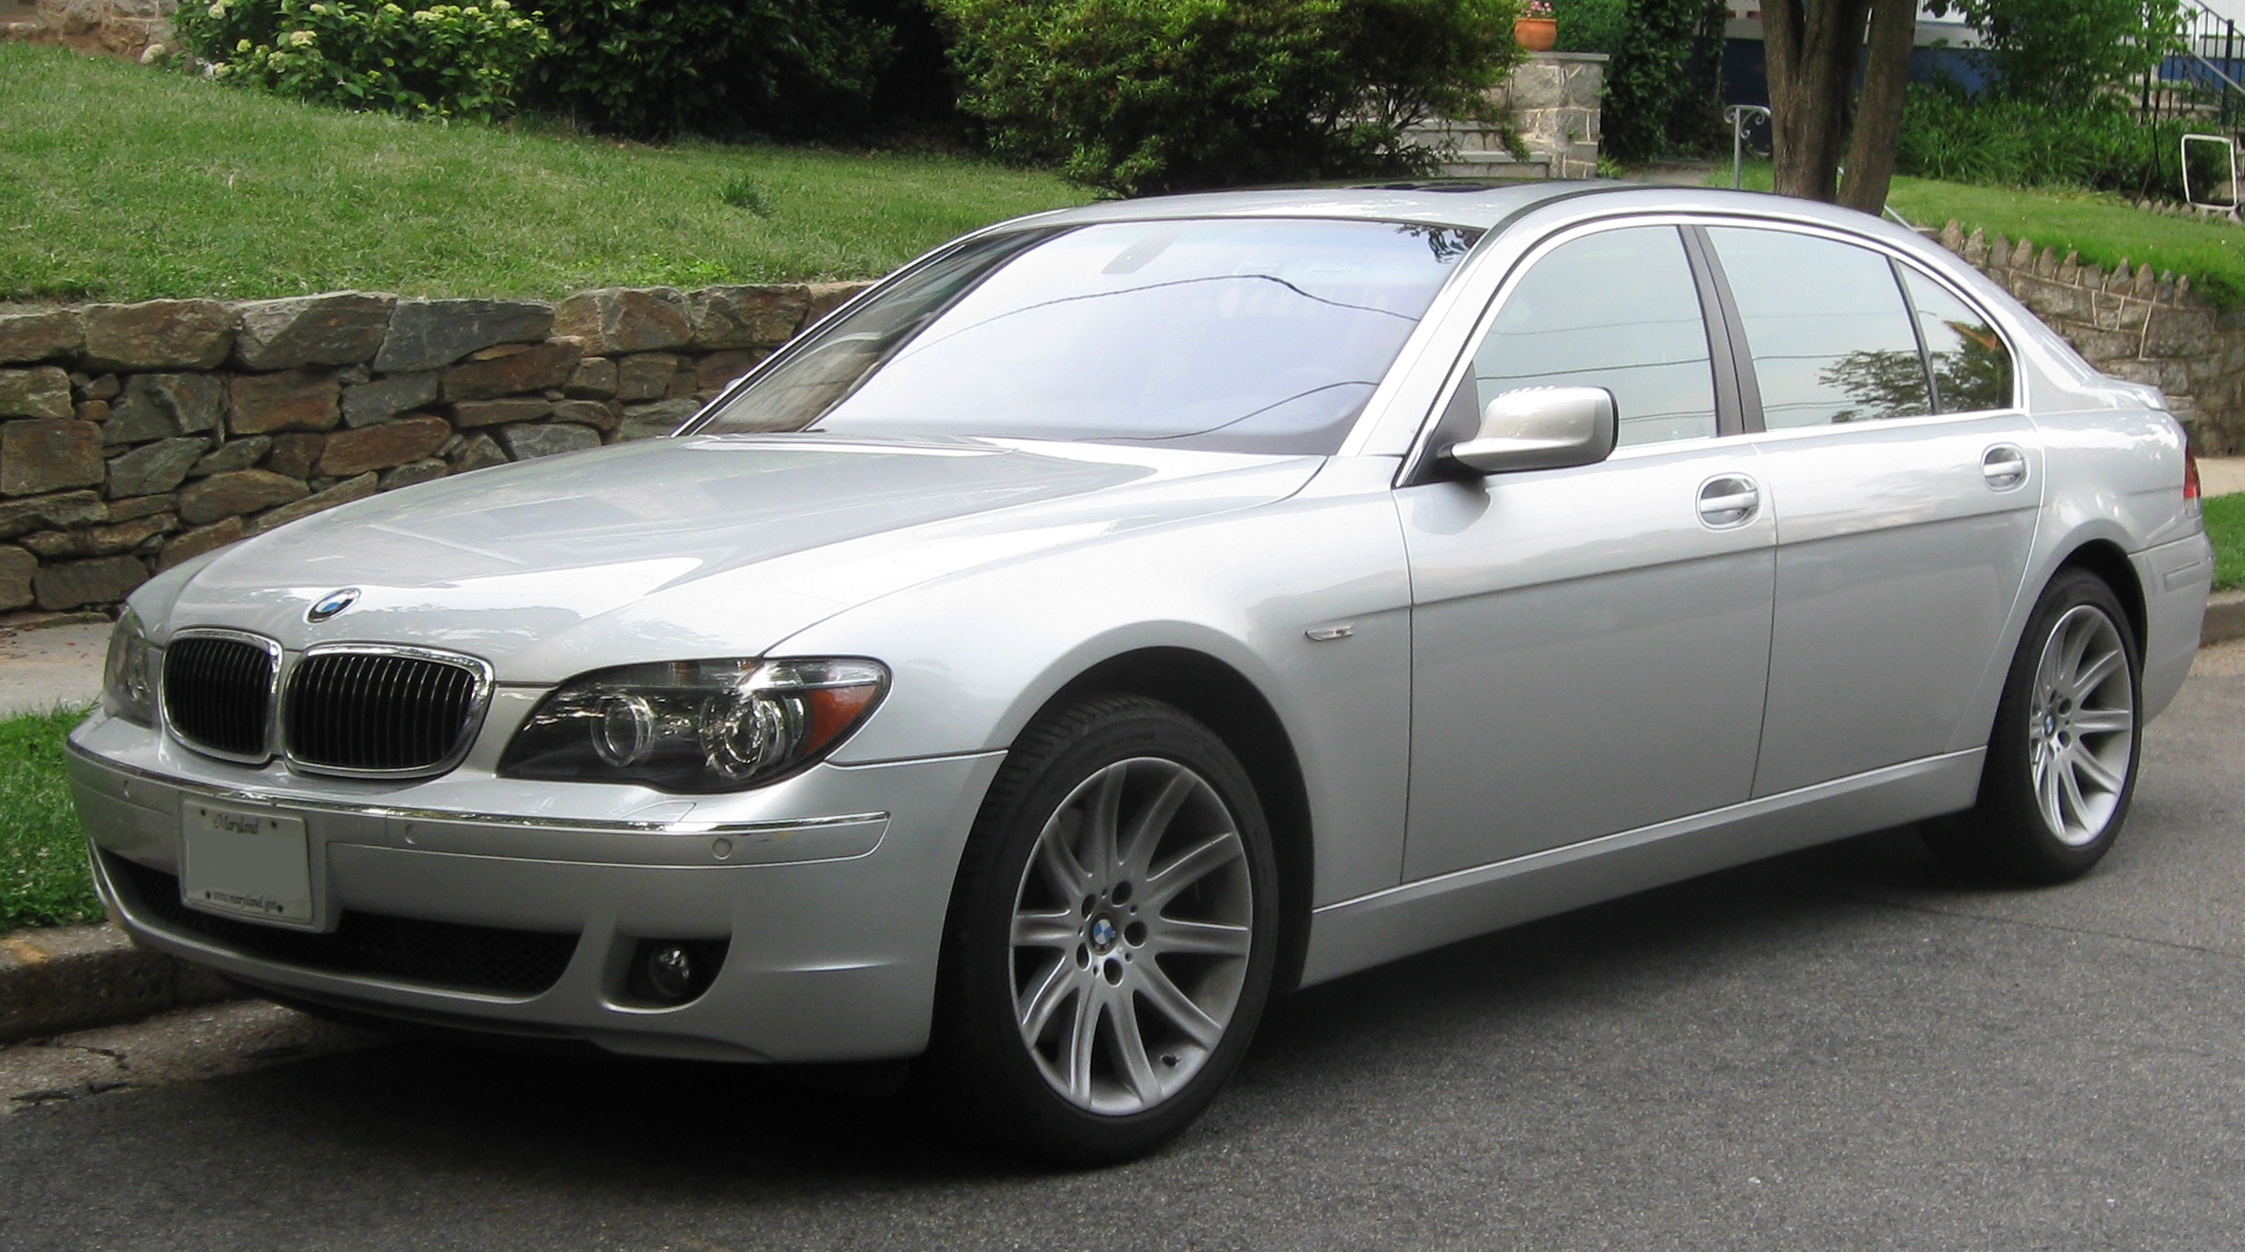 File:2006-2008 BMW 7-Series.jpg - Wikimedia Commons